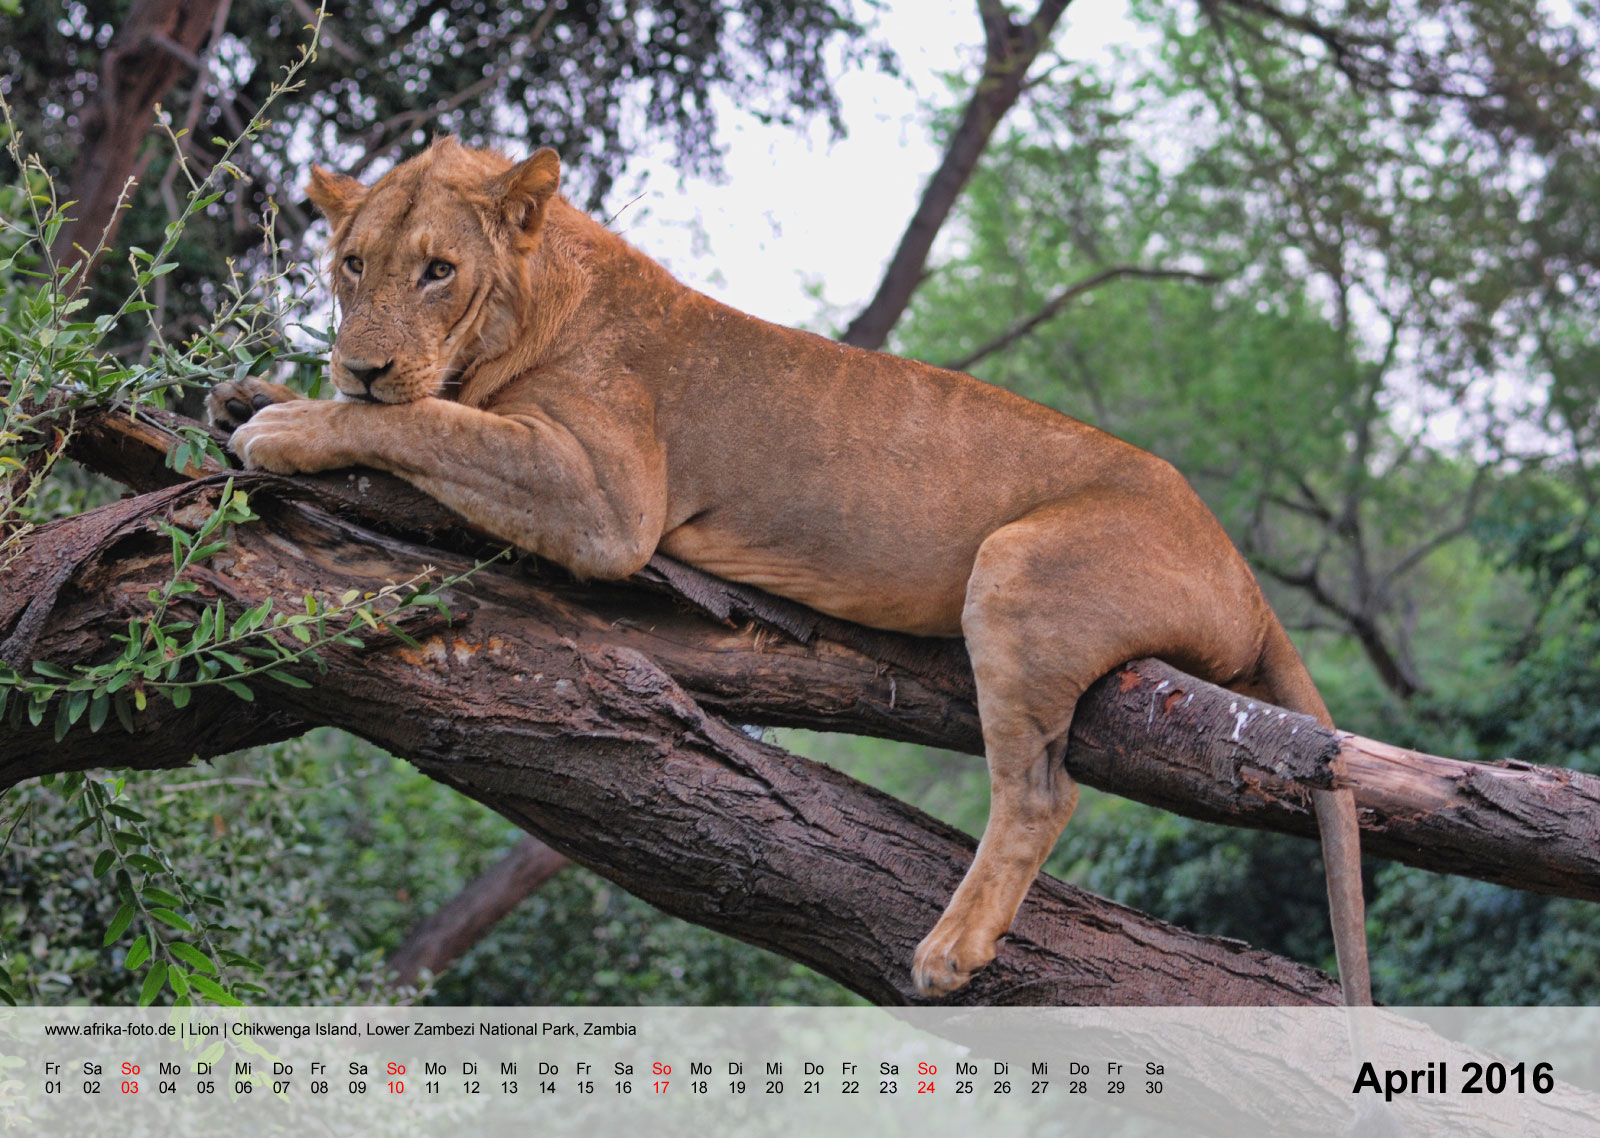 Löwe | Lion | Chikwenga Island, Lower Zambezi National Park, Zambia | Kalender 2016 - April